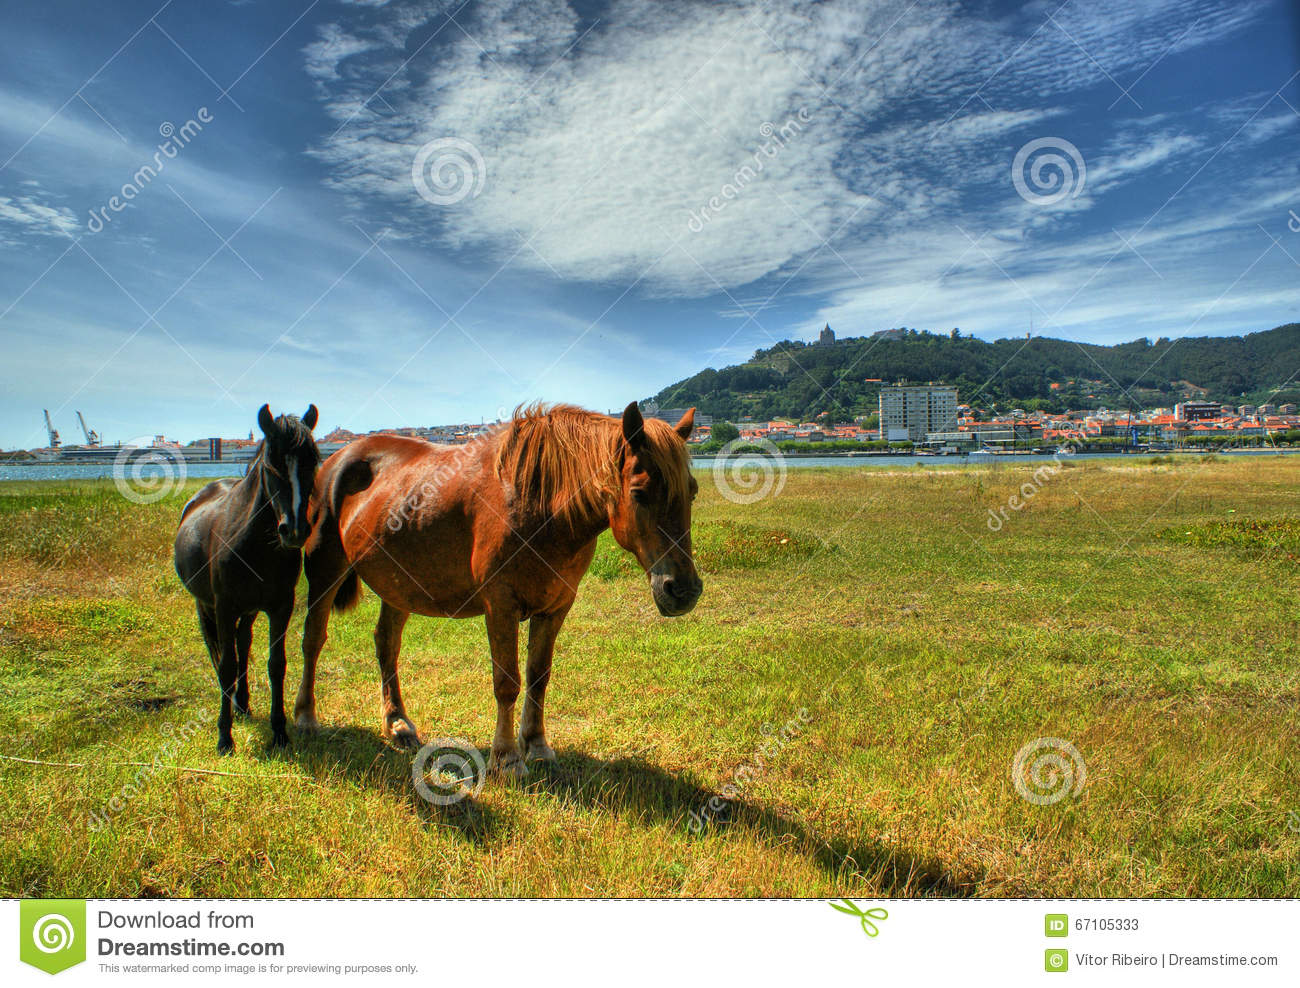 Two horses grazing in Viana do Castelo